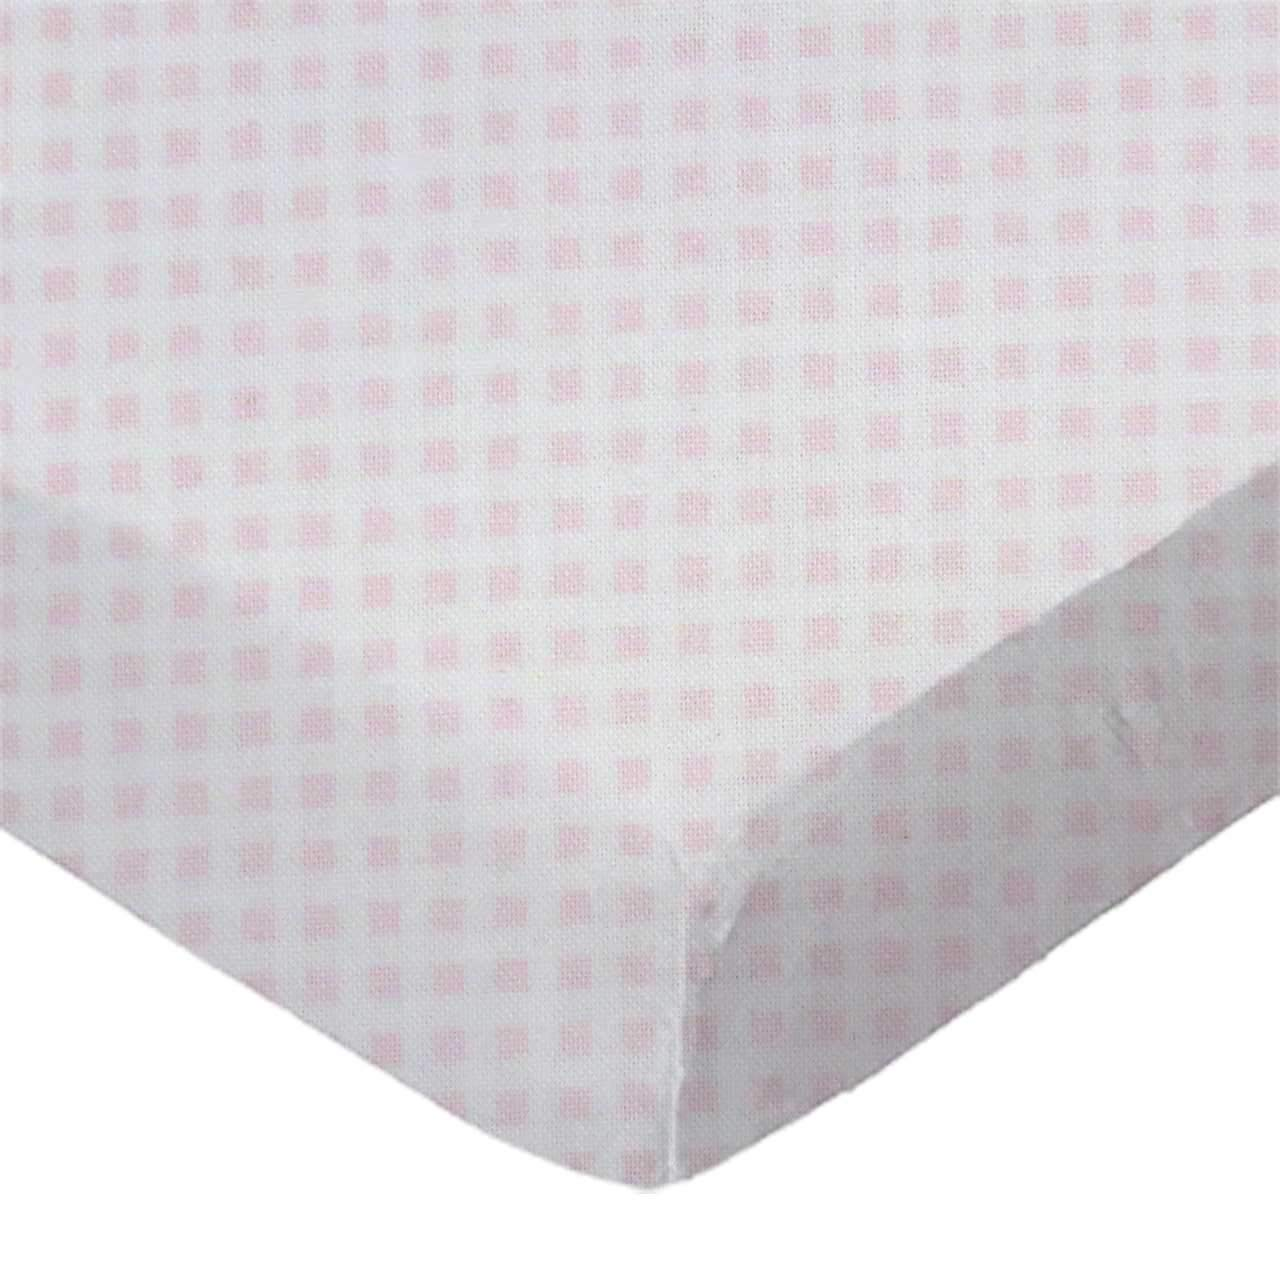 SheetWorld discount Fitted Cradle Sheet - Max 77% OFF Pink Made Jersey Gingham Knit